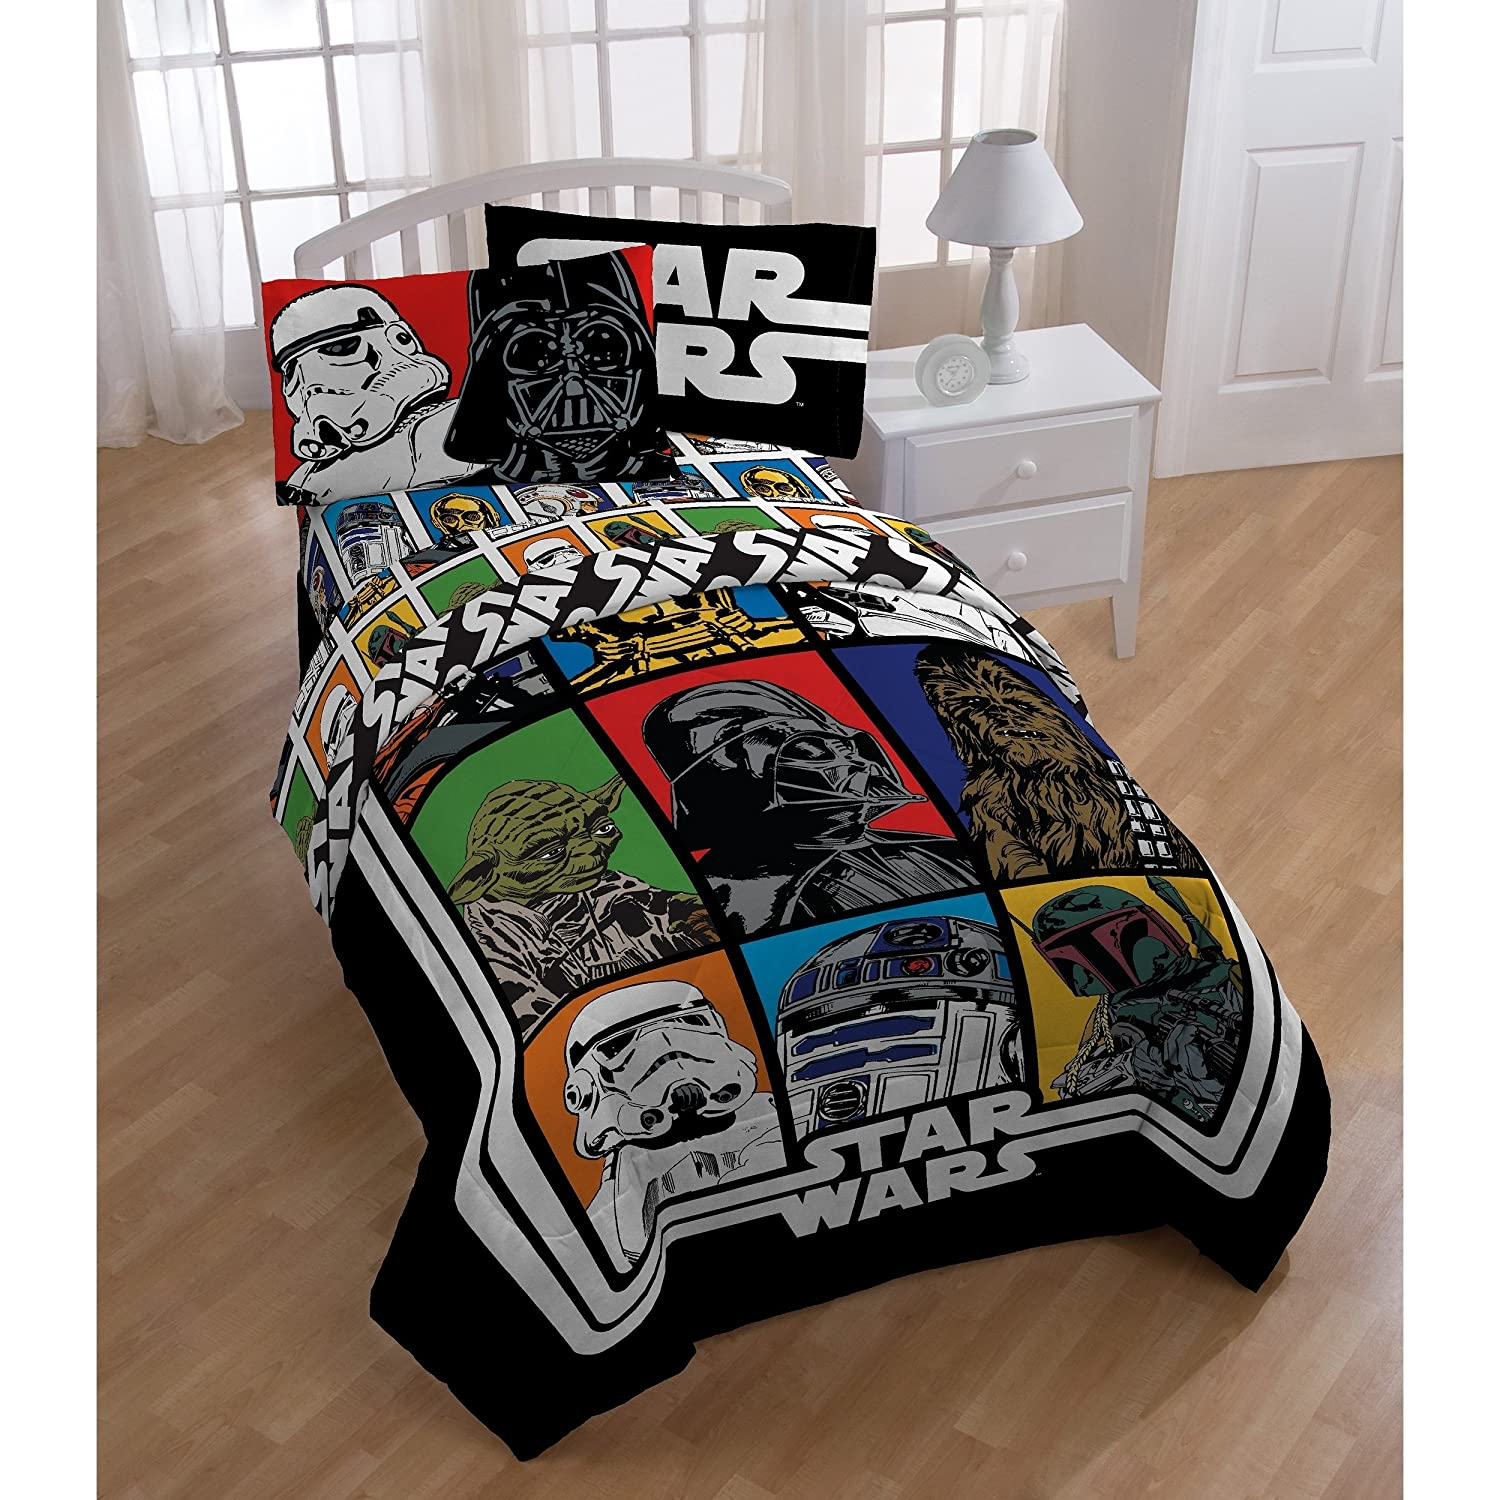 1 Piece Kids Black White Star Wars Movie Themed Comforter Twin Full, Classic Movies Series Patchwork Bedding, Darth Vader R2D2 Stoormtrooper Yoda Chewbacca Character Patch Work Pattern, Blue Red Green